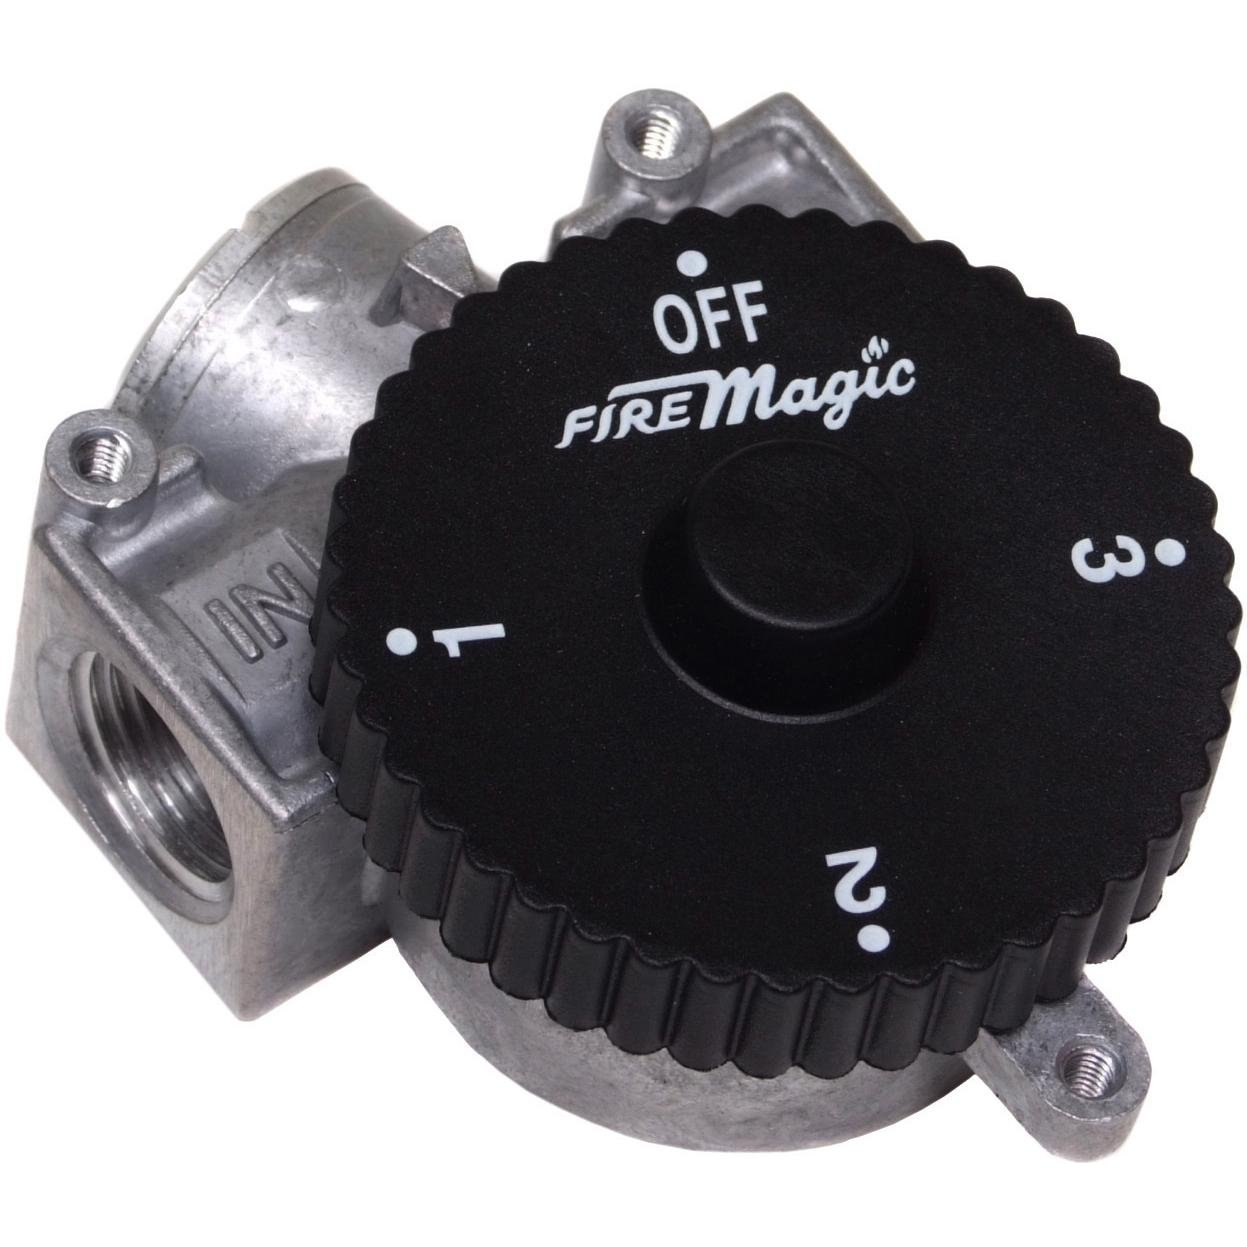 1 Hour Automatic Timer Safety Shut Off Valve by Fire Magic